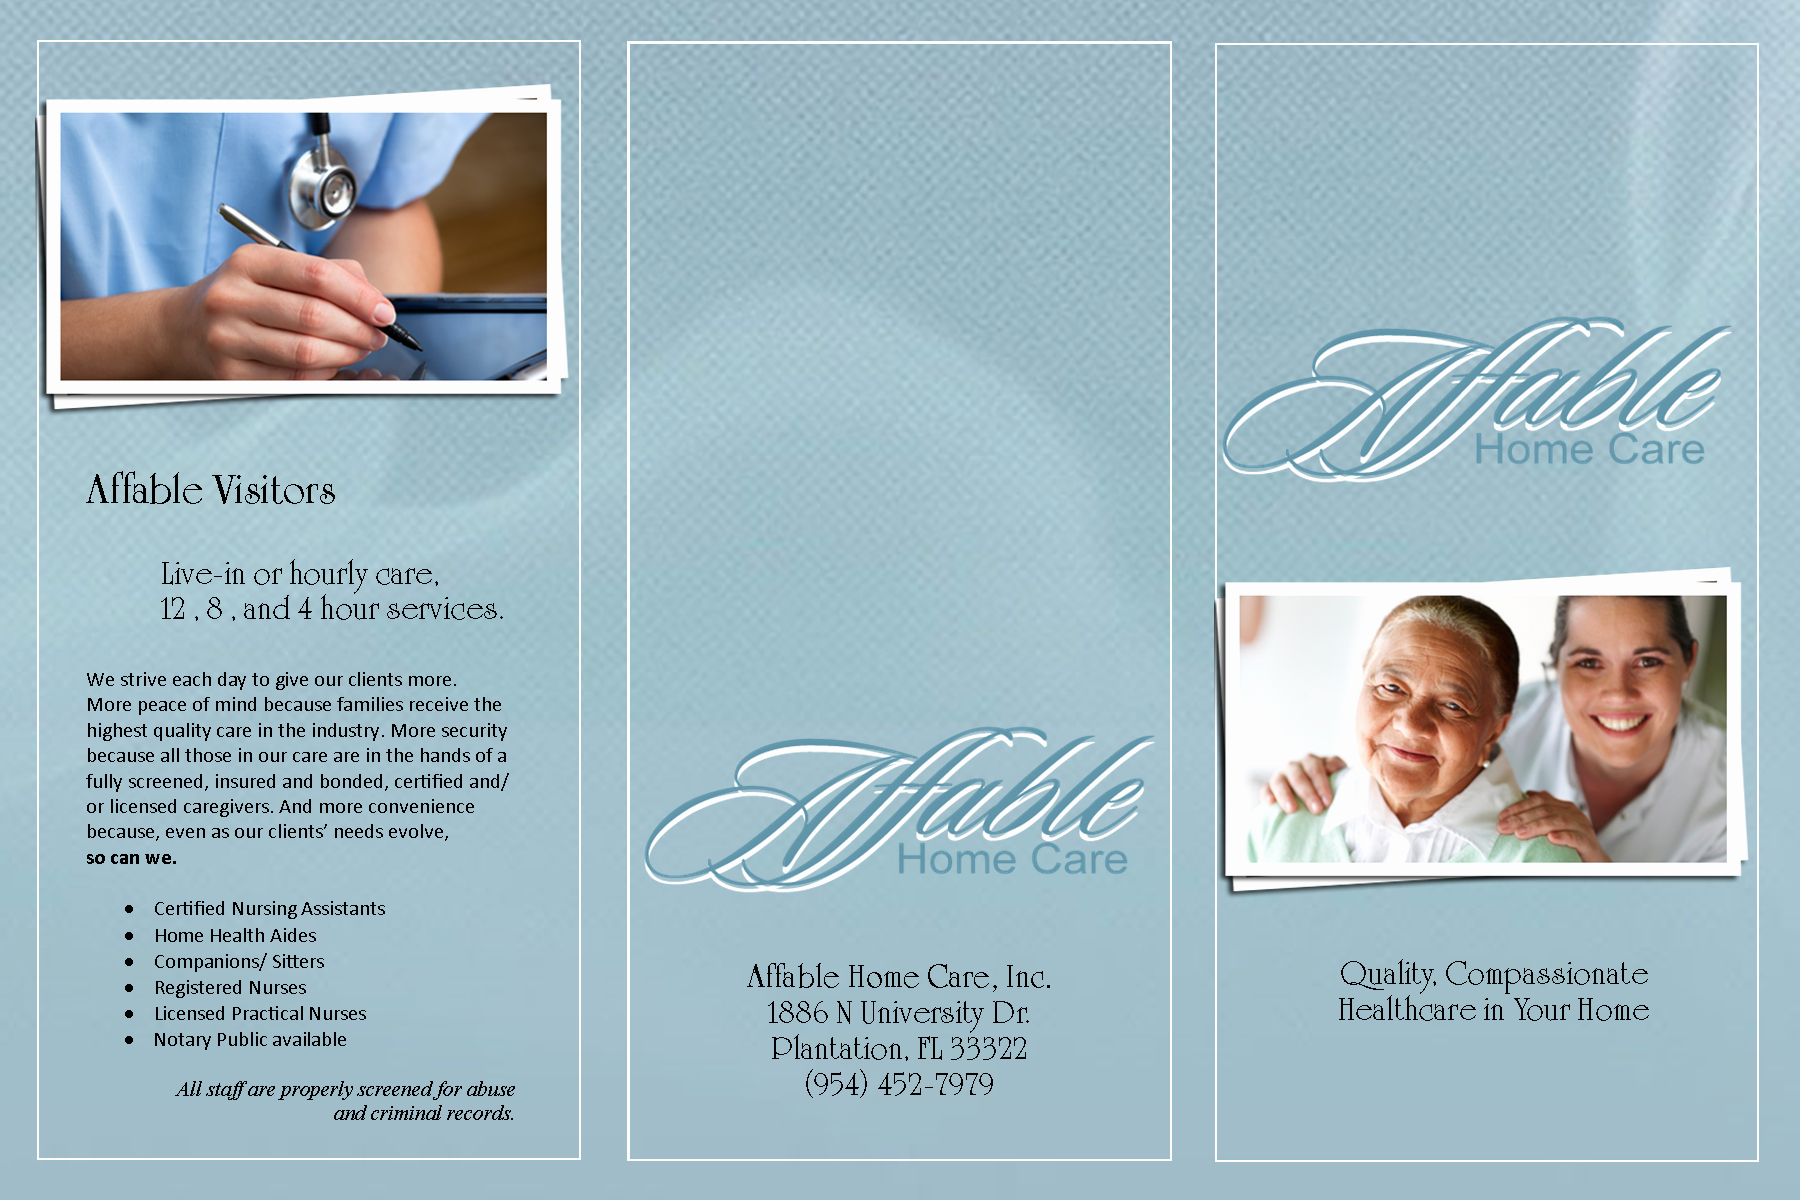 Home Health Care Brochures Unique Affable Home Health Care Brochure Brochures